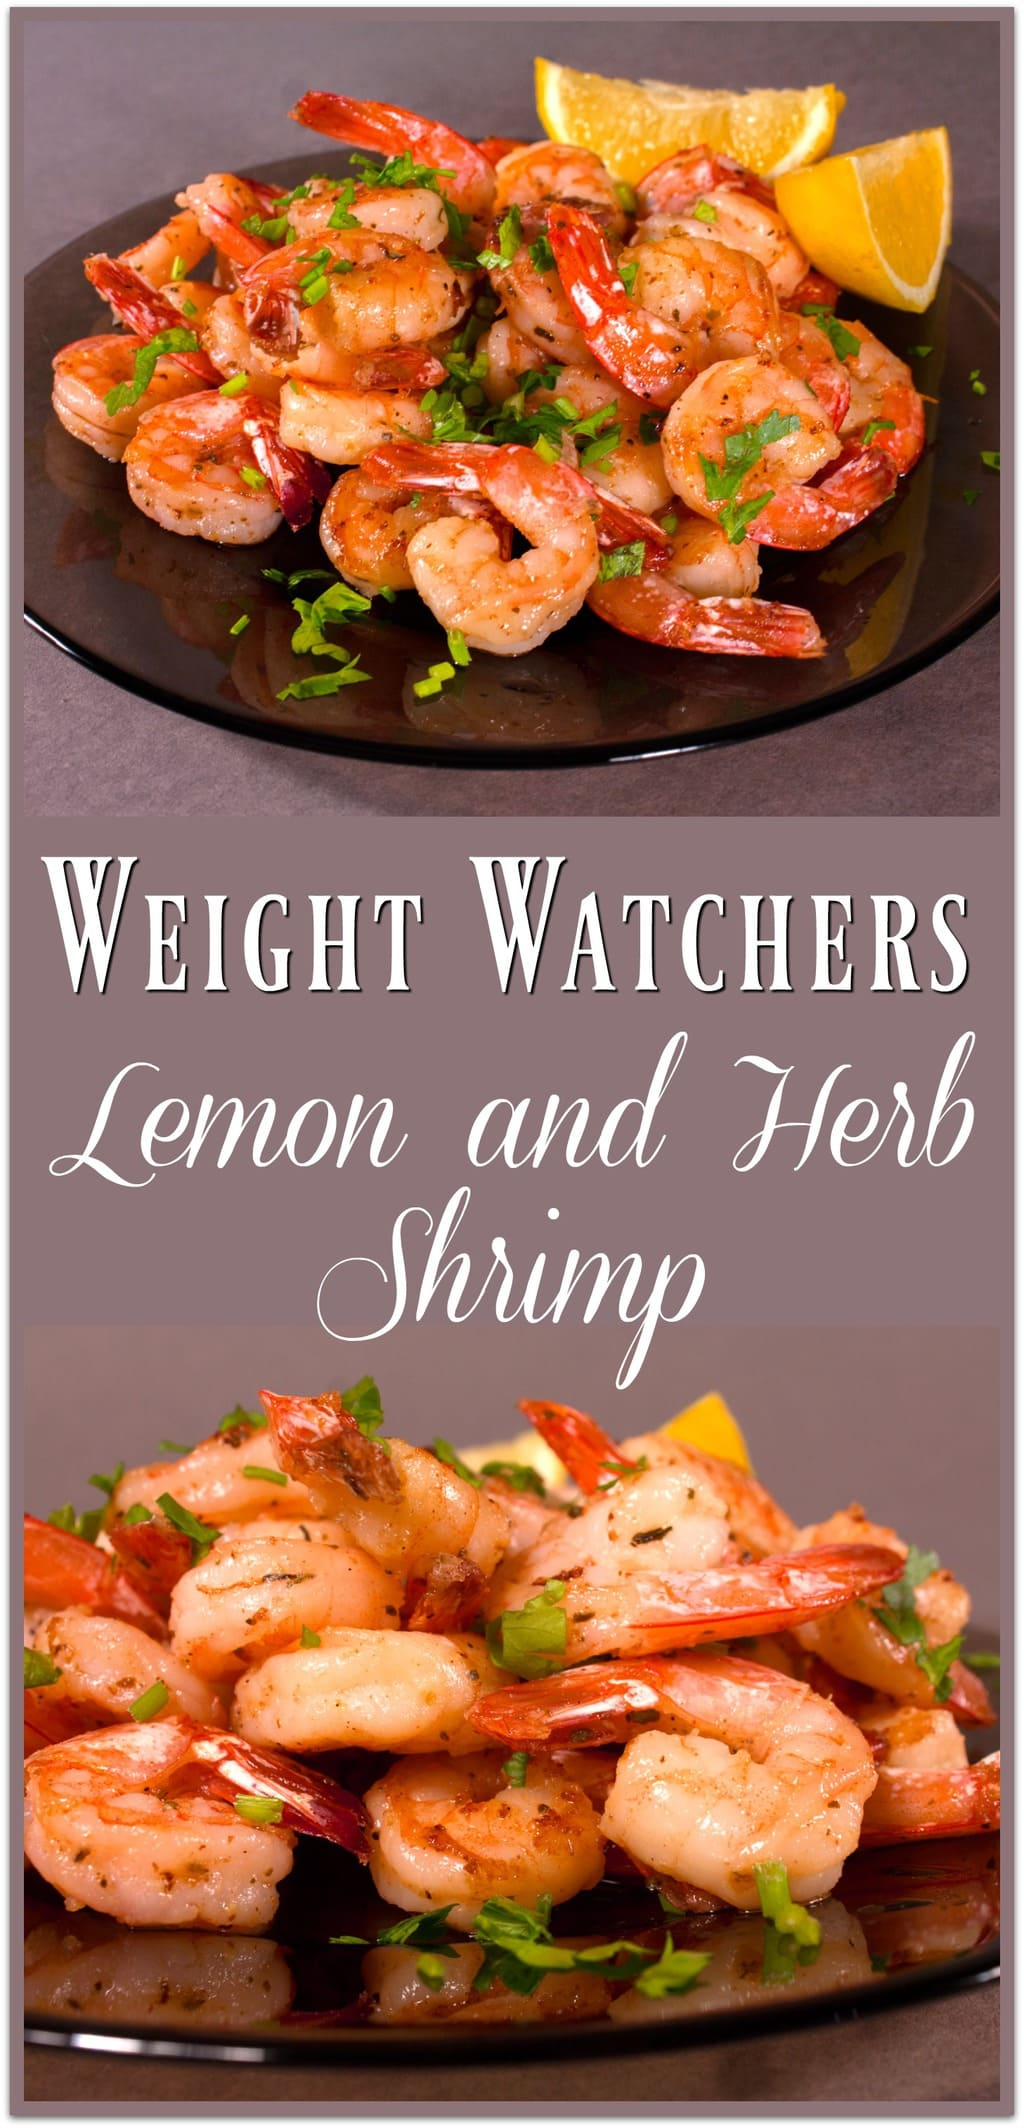 I am so excited to bring you this Lemon and Herb Shrimp dish made for Weight Watchers! If you are looking for a delicious lunch recipe that is filling but fits in the Points plan, you've come to the right place! This can be used as a dinner recipe, too! Just add some vegetables and a salad!